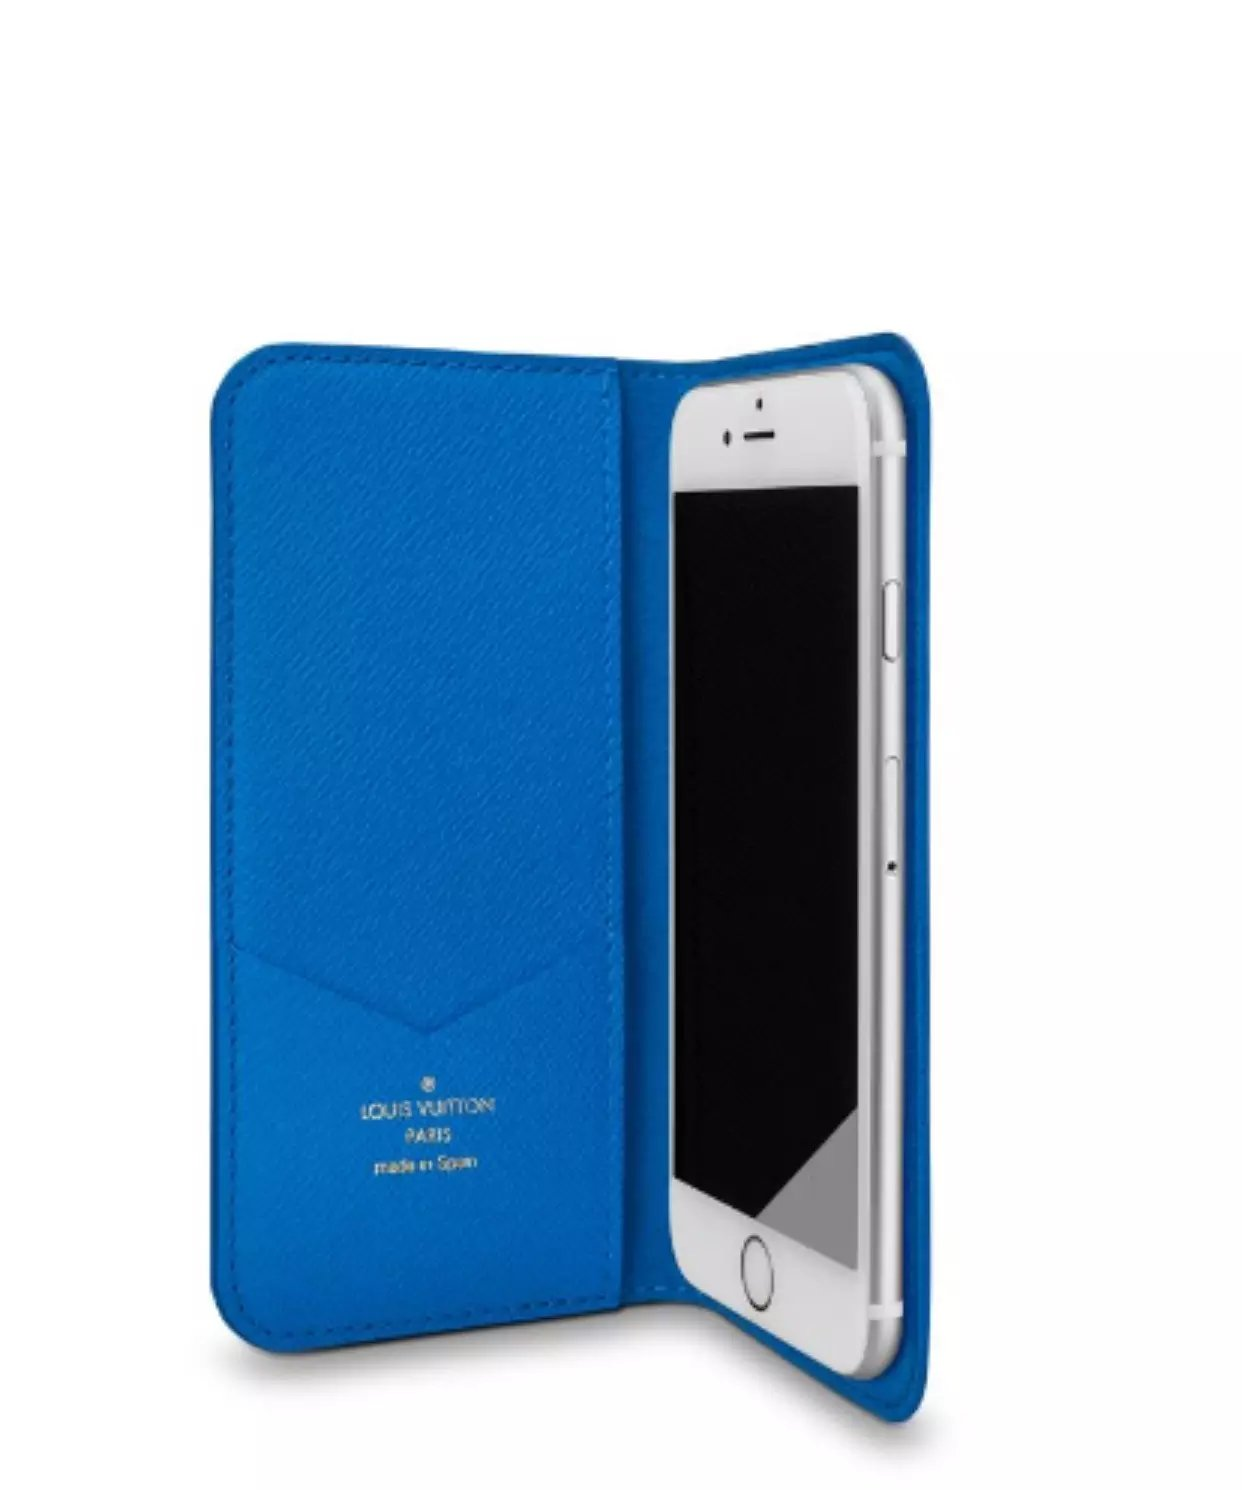 foto iphone hülle iphone klapphülle Louis Vuitton iphone7 Plus hülle iphone 7 Plus hülle was7rdicht handy cover individuell bilder iphone iphone hülle online shop iphone 7 Plus größe iphone hülen